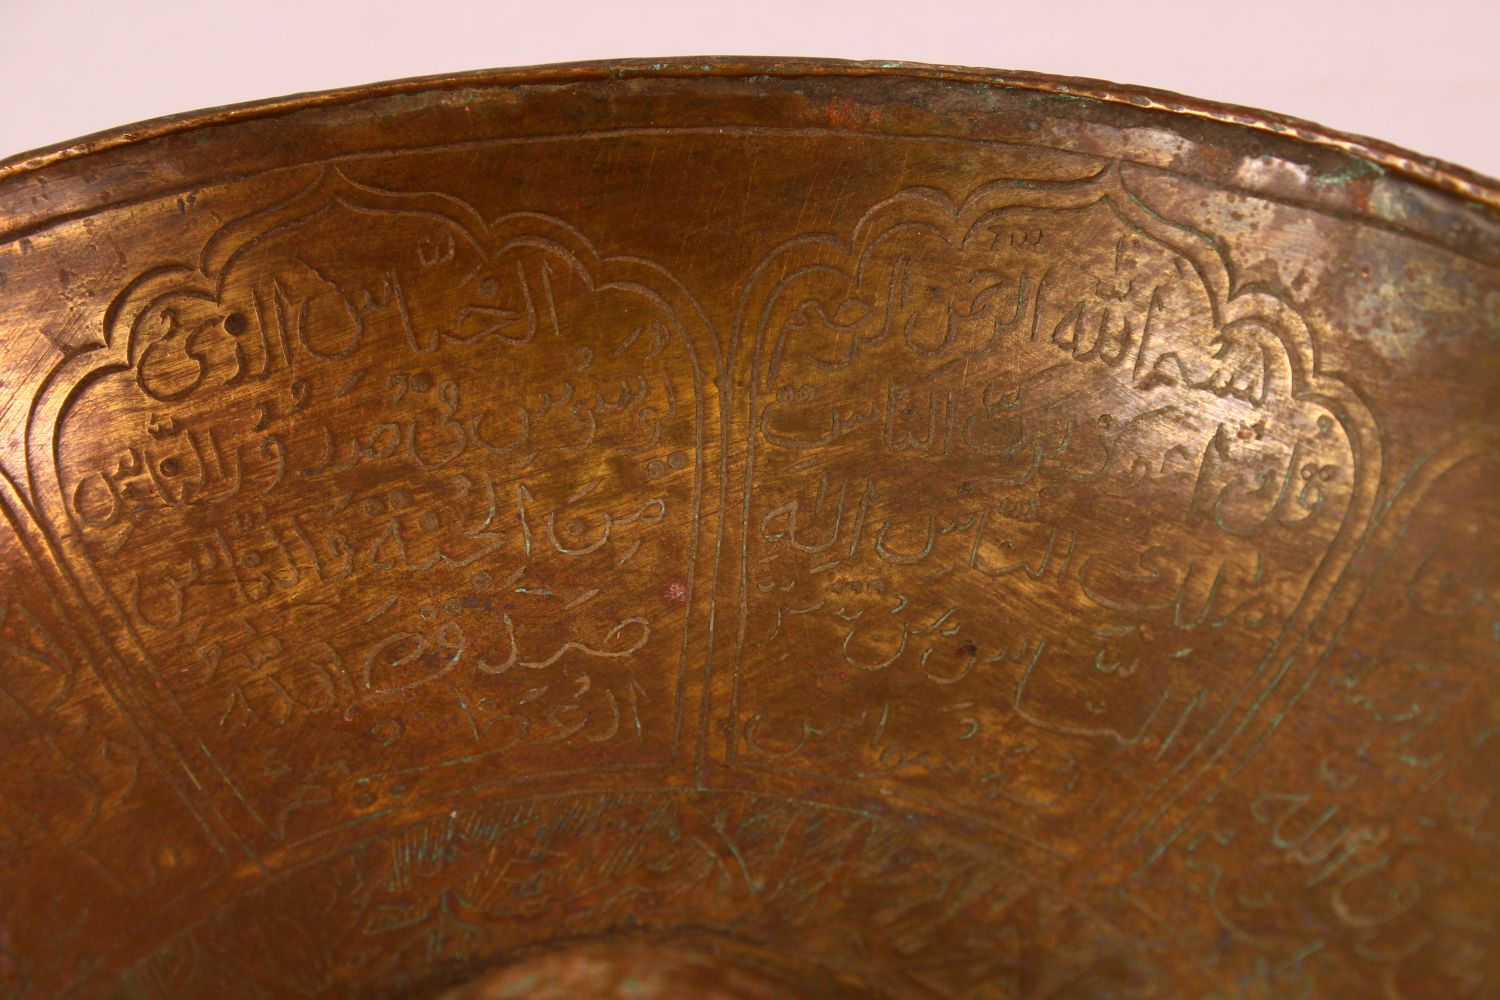 A 17TH/18TH CENTURY INDIAN DECCANI MAGIC BOWL, engraved to the exterior and interior with bands - Image 2 of 4